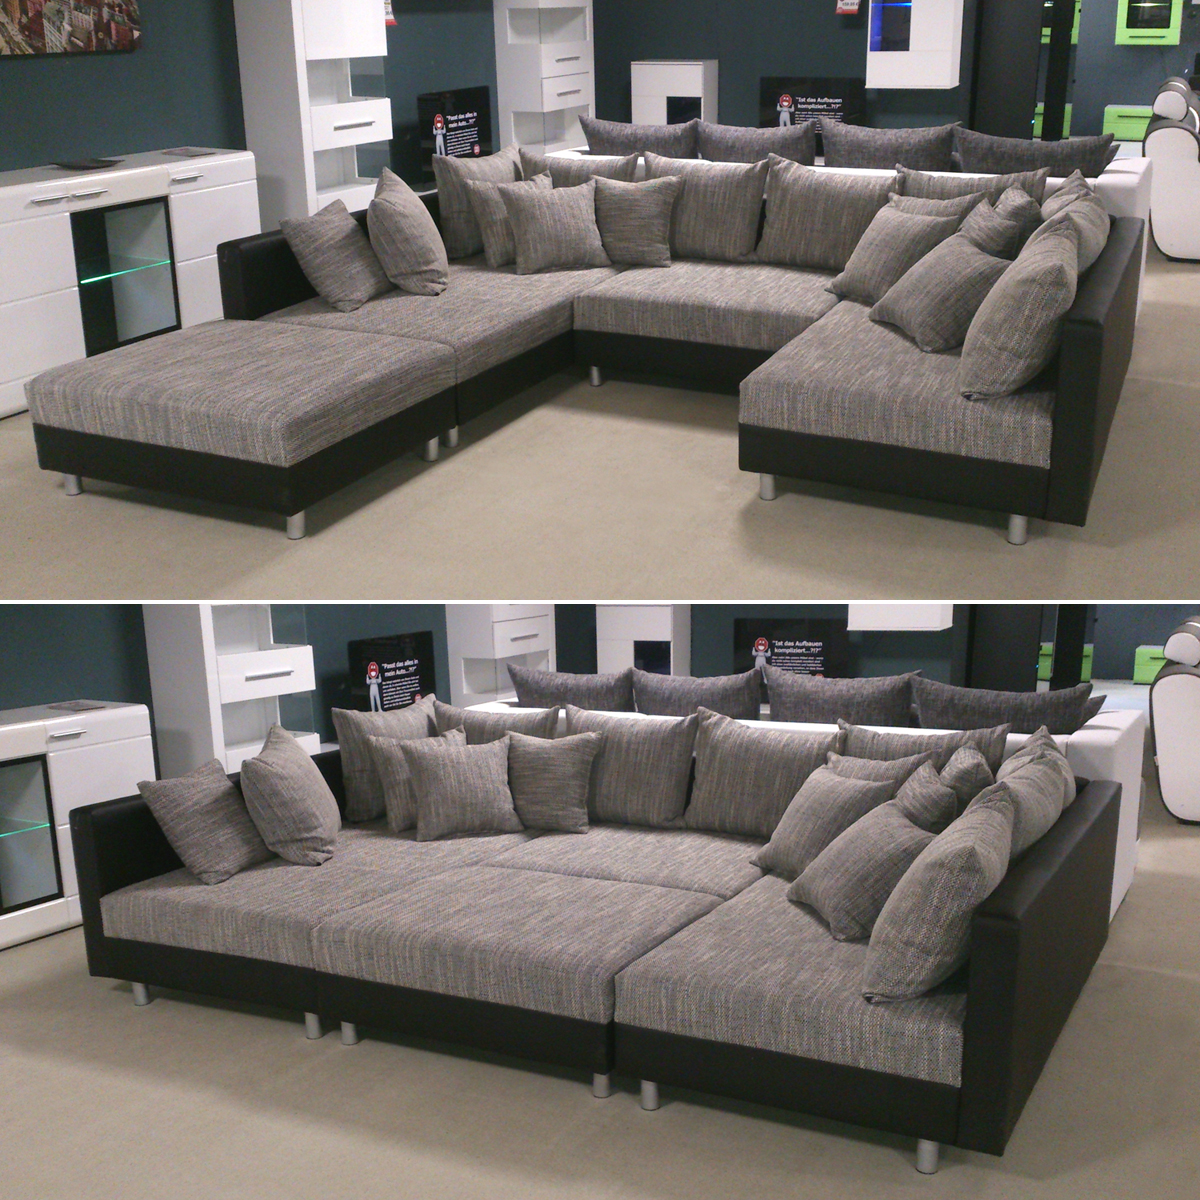 Xxl sofa u form design sectional sofa matera xxl with led for Ecksofa polster